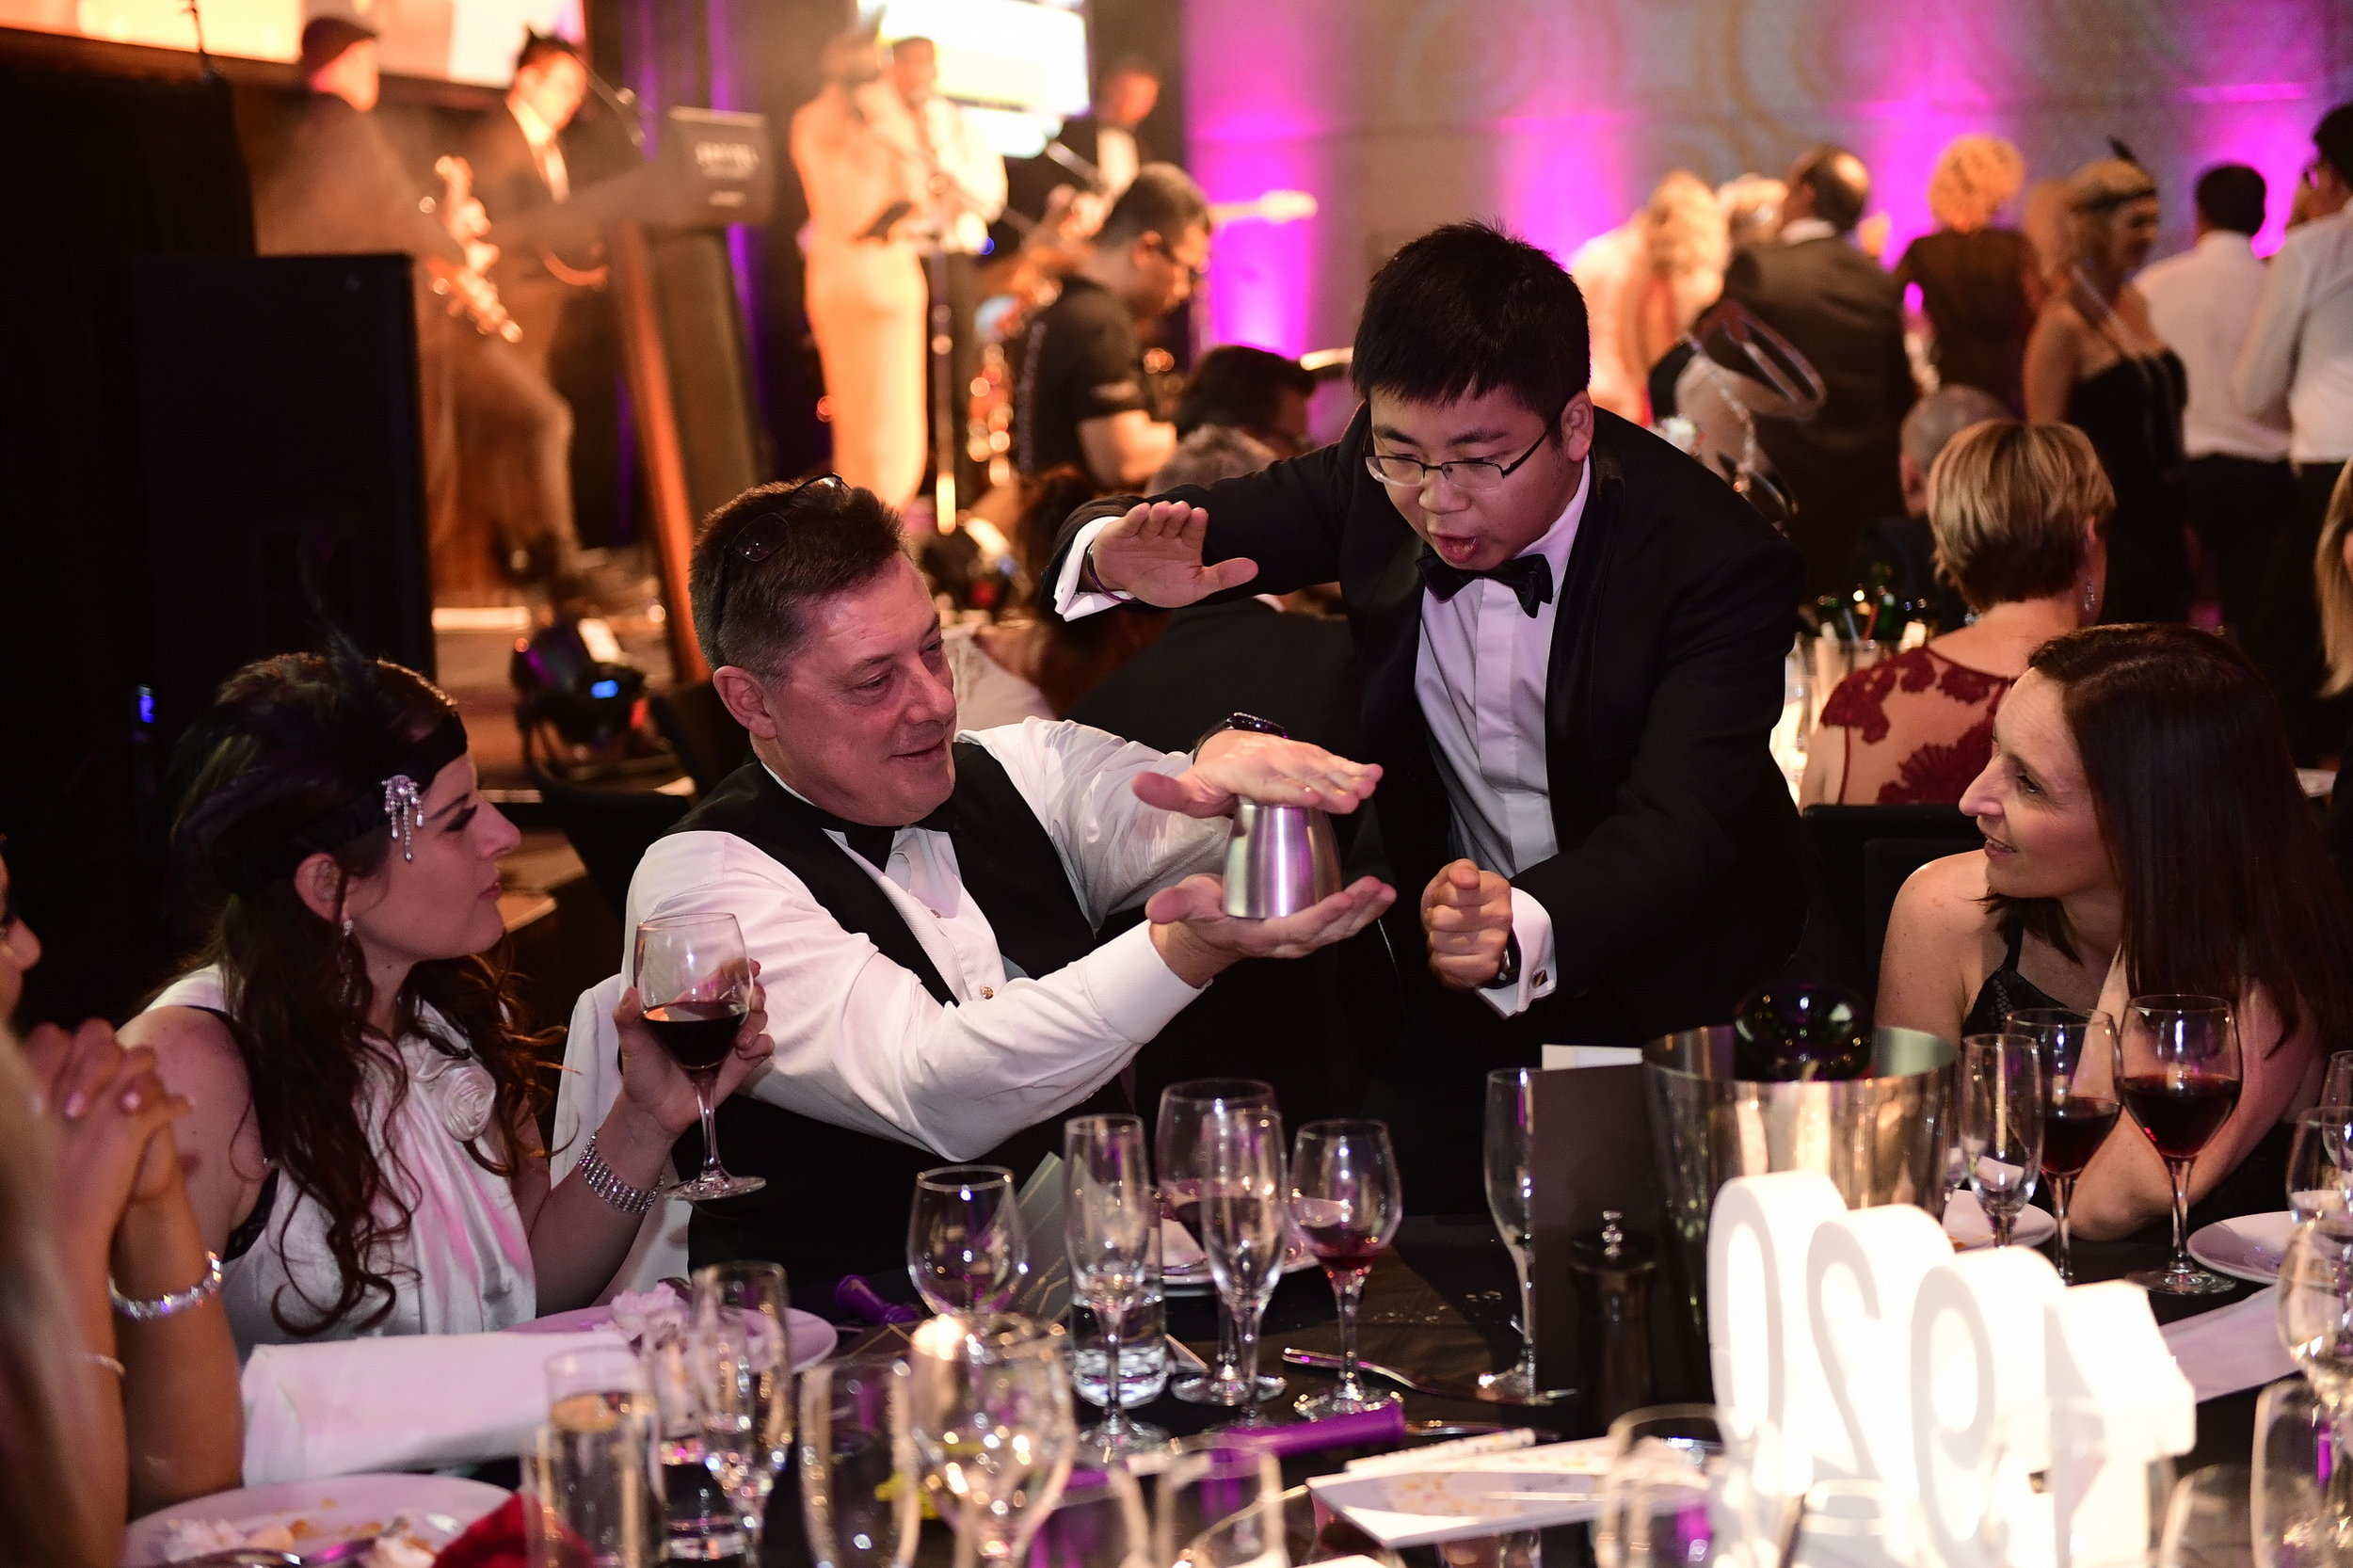 Table Magic - -Magician performs from table to table- Perfect for any down-time during / between the meals- Increases audience engagement with the event